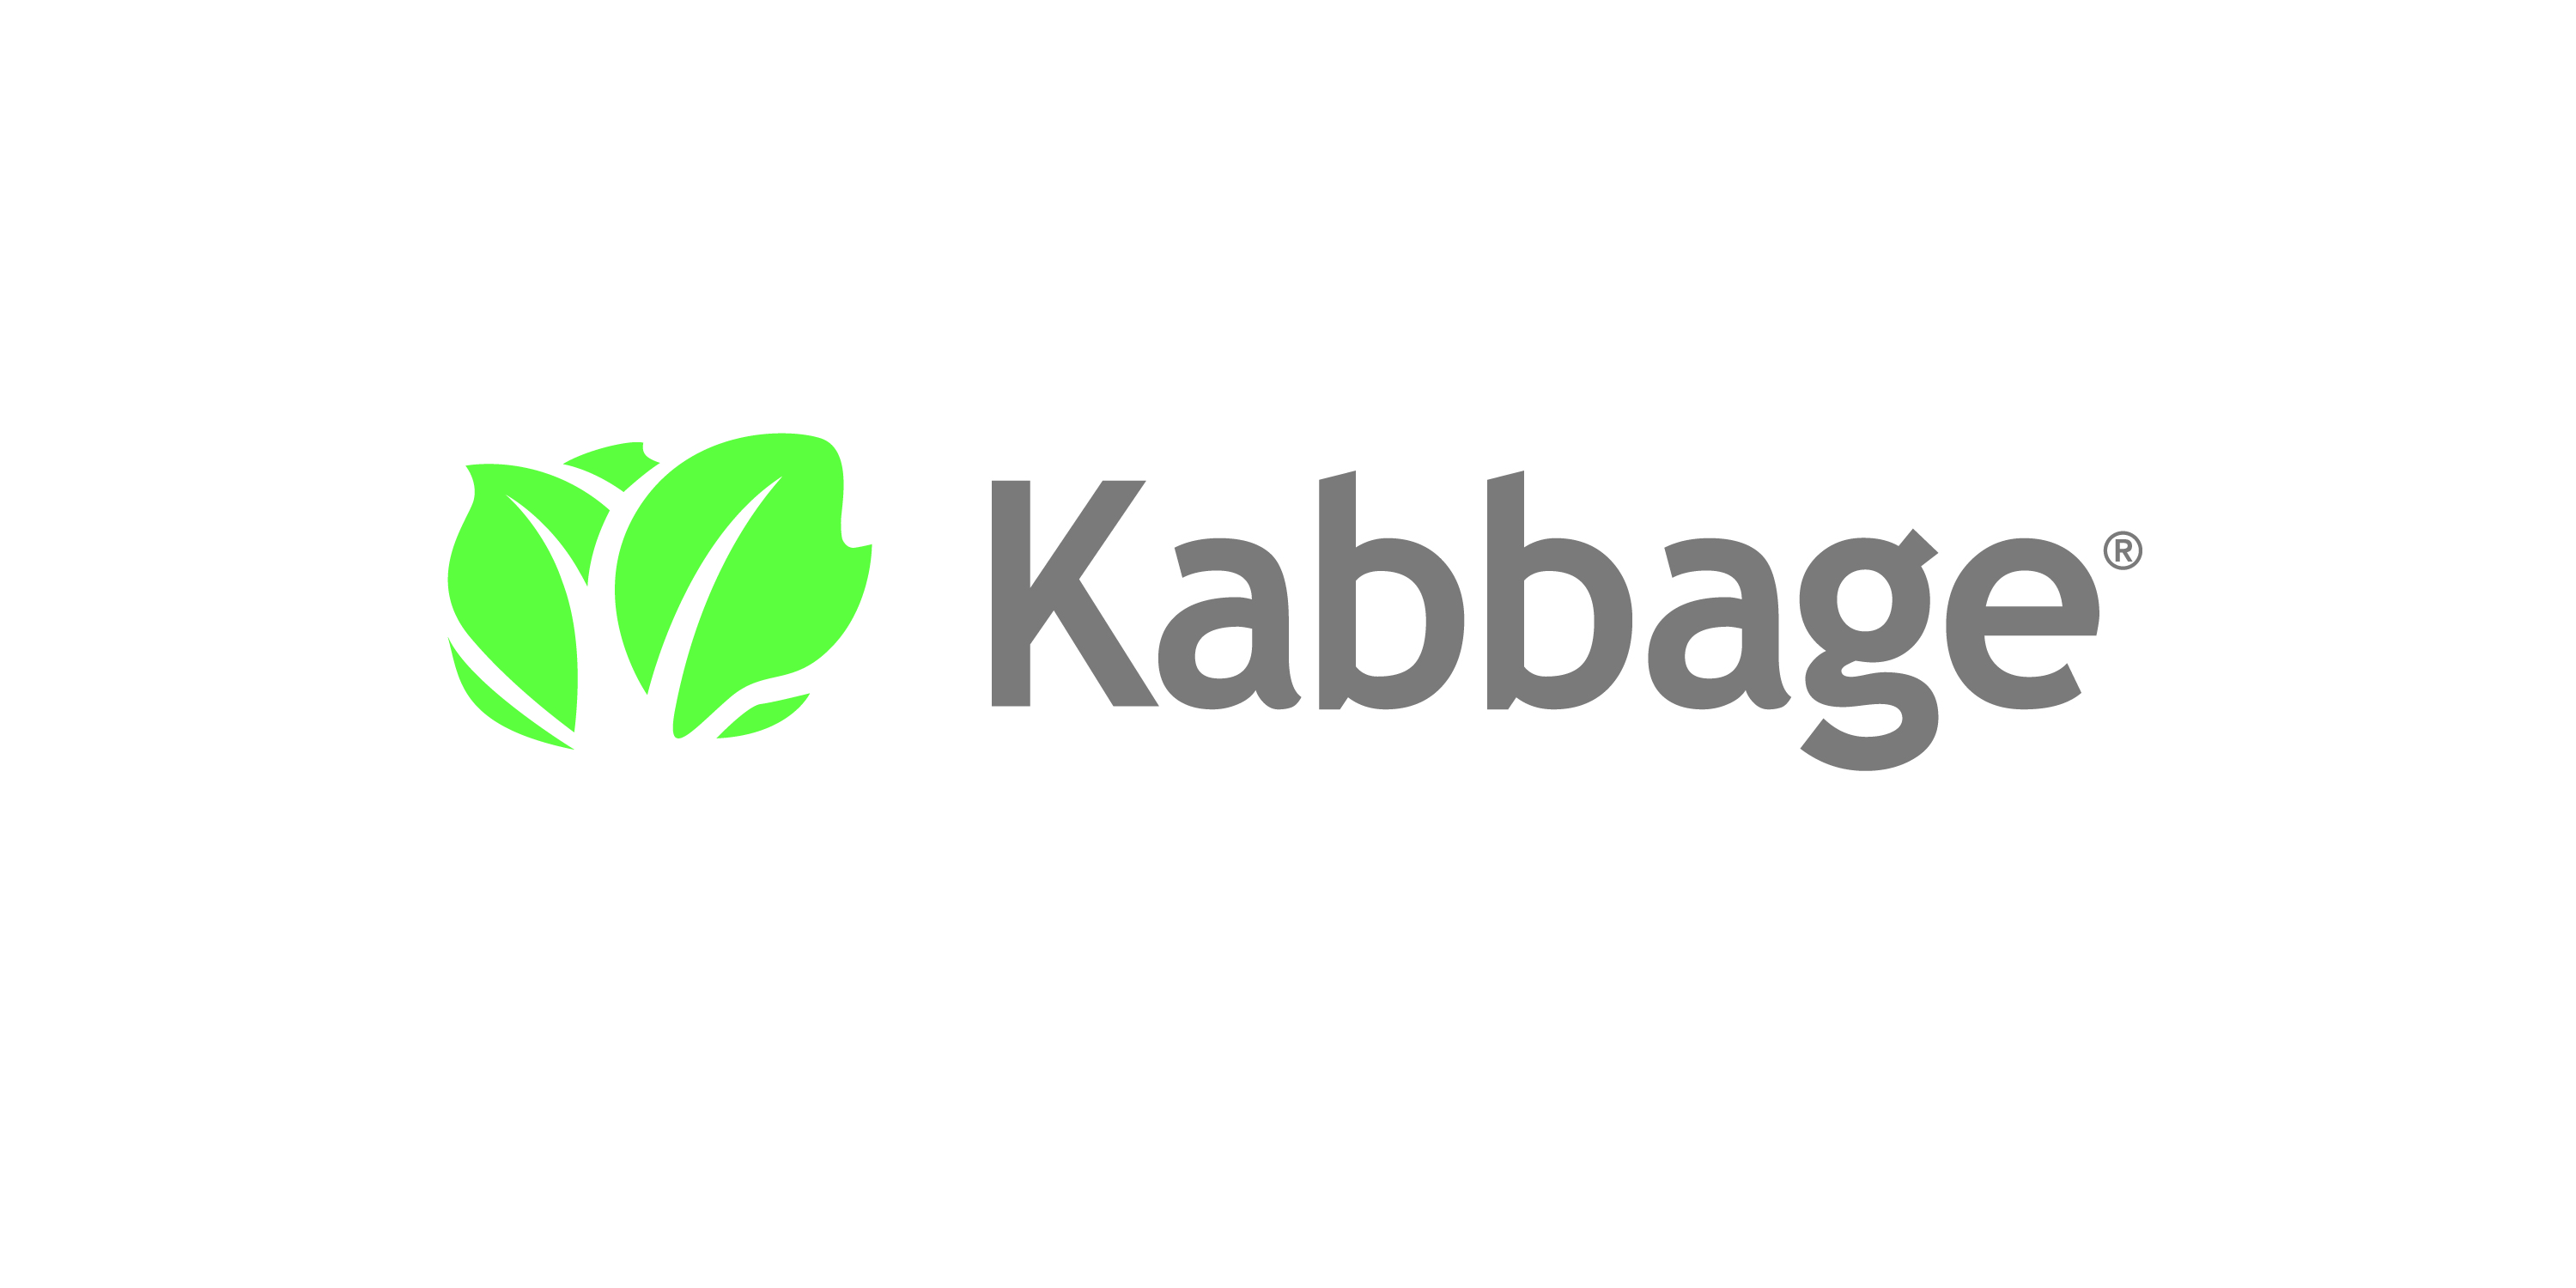 U S  Online Banking Platform Azlo and Kabbage Collaborate to